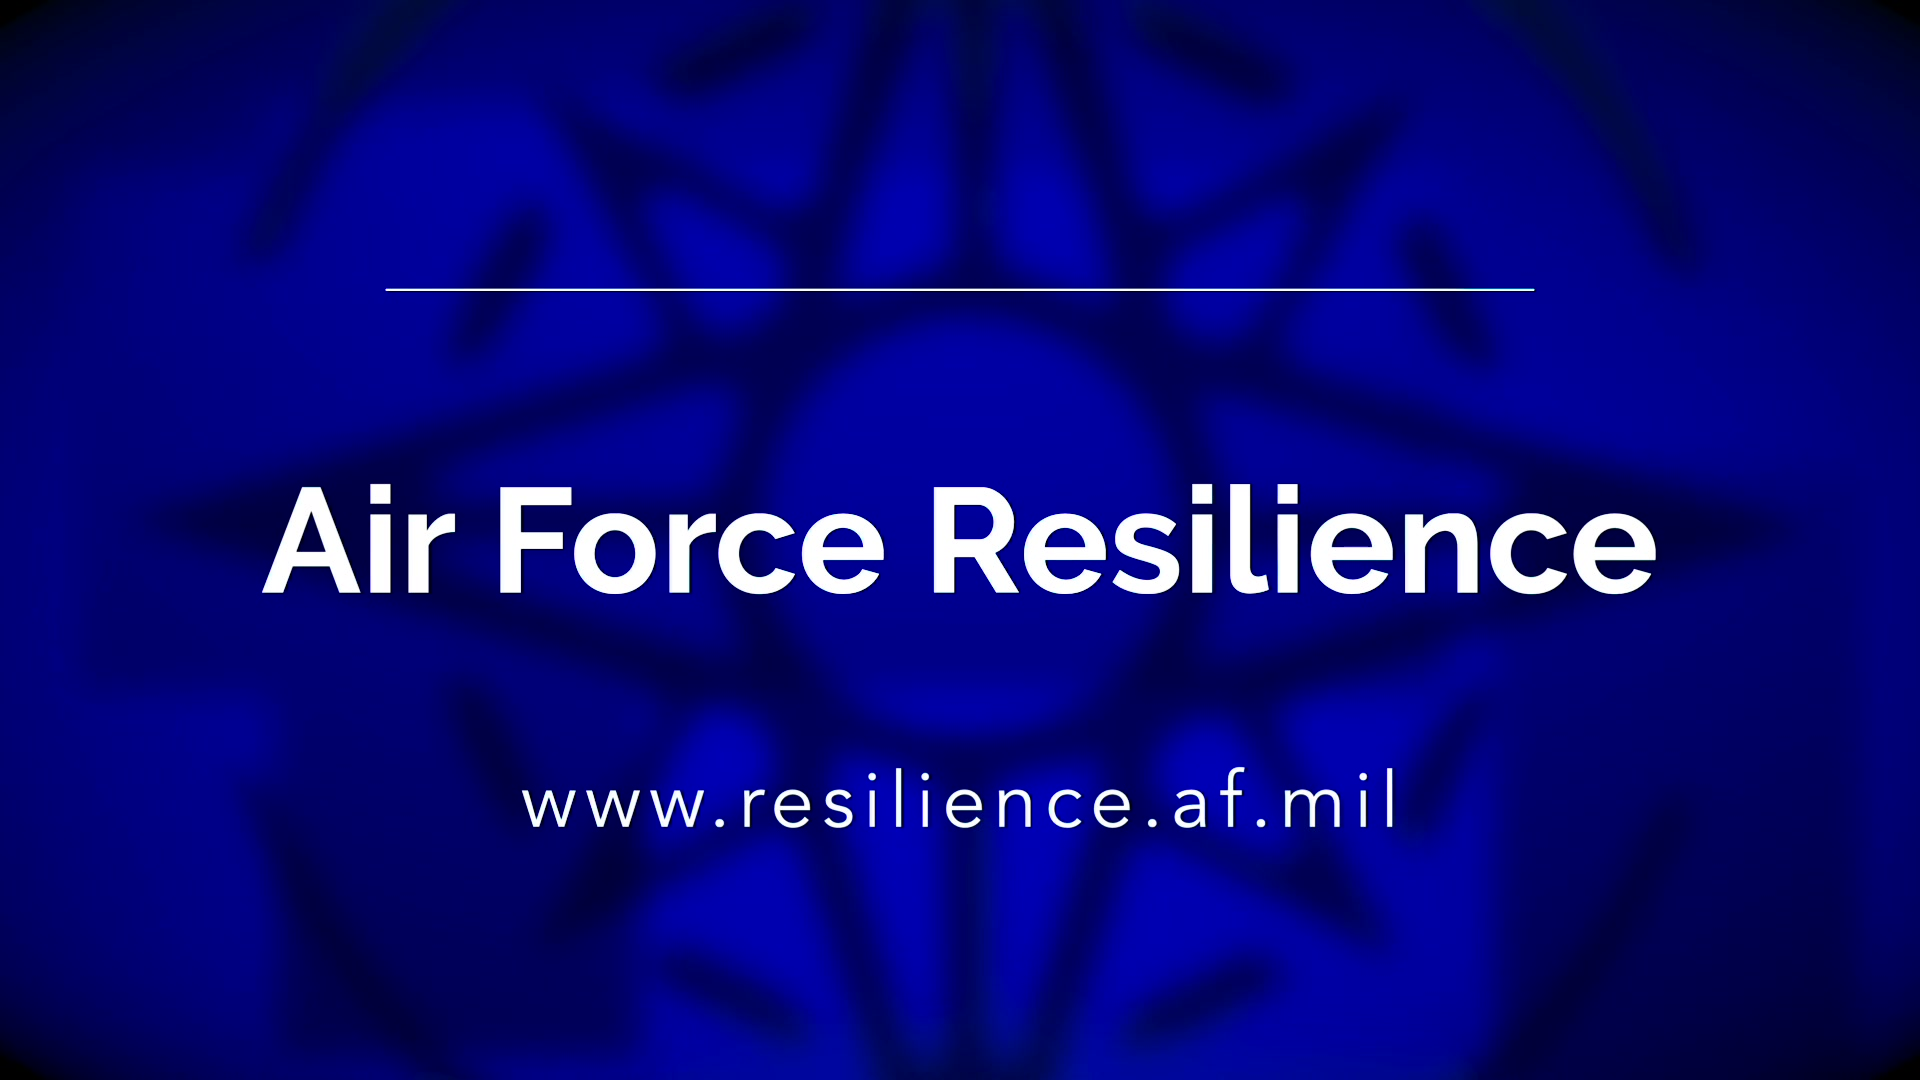 The Air Force Office of Integrated Resilience recently unveiled a new website (https://www.resilience.af.mil)  that highlights tools to help Airmen and their families thrive, and provide a culture of dignity and respect across the Total Force. These tools, including prevention, intervention and postvention lines of effort, aim to confront the challenges of sexual assault and suicide head-on, thereby developing a more resilient force.